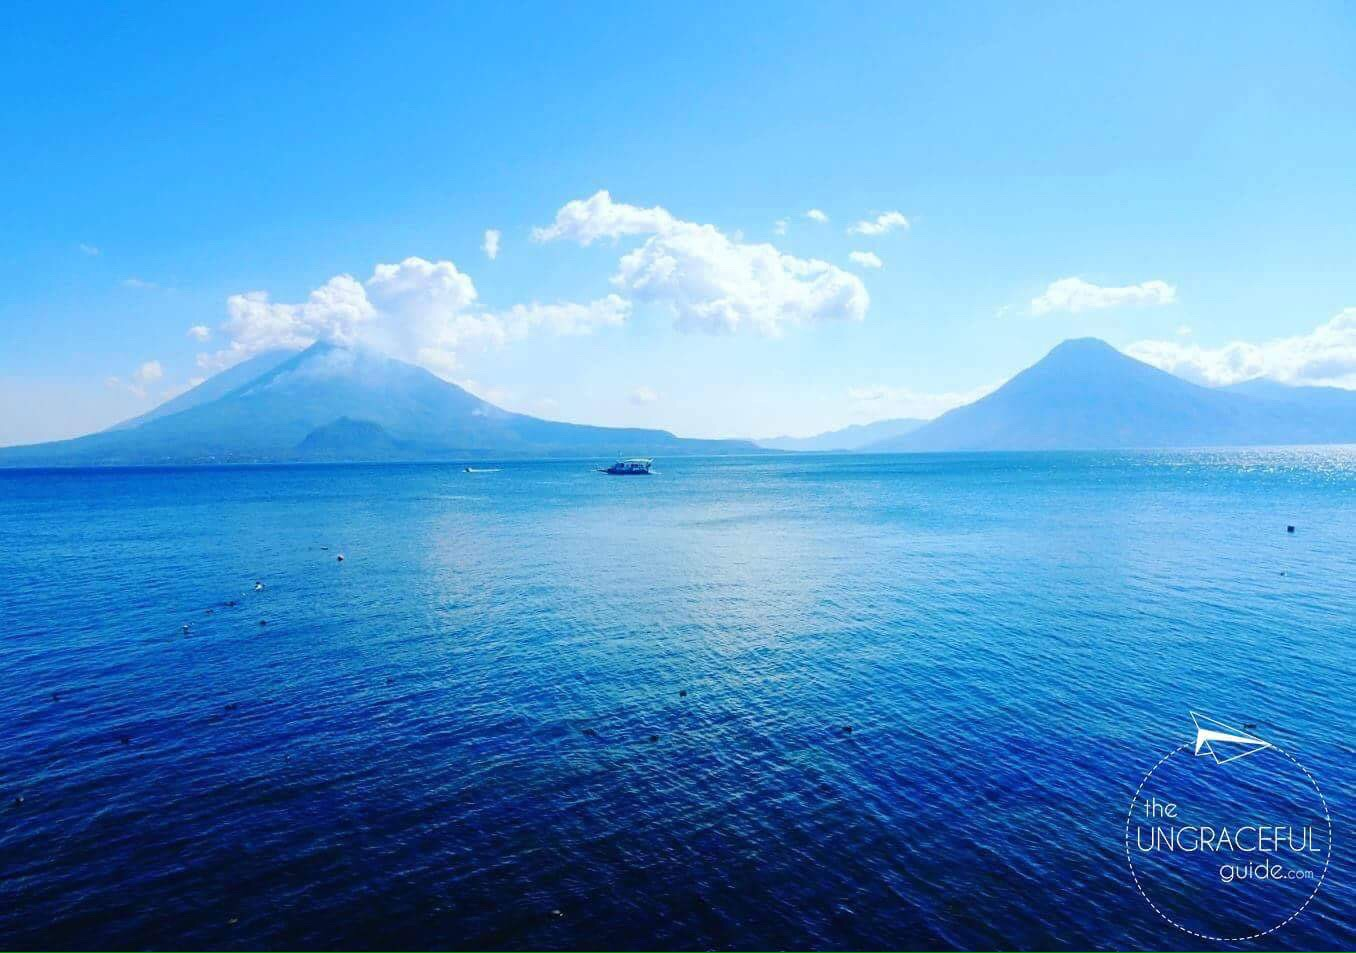 "The Ungraceful Guide: Lake Atitlán Guatemala <img src=""images/"" width=""800"" height=""600"" alt=""lake atitlán - img 1072 - Guatemala: Loving Life on Lake Atitlán"">"